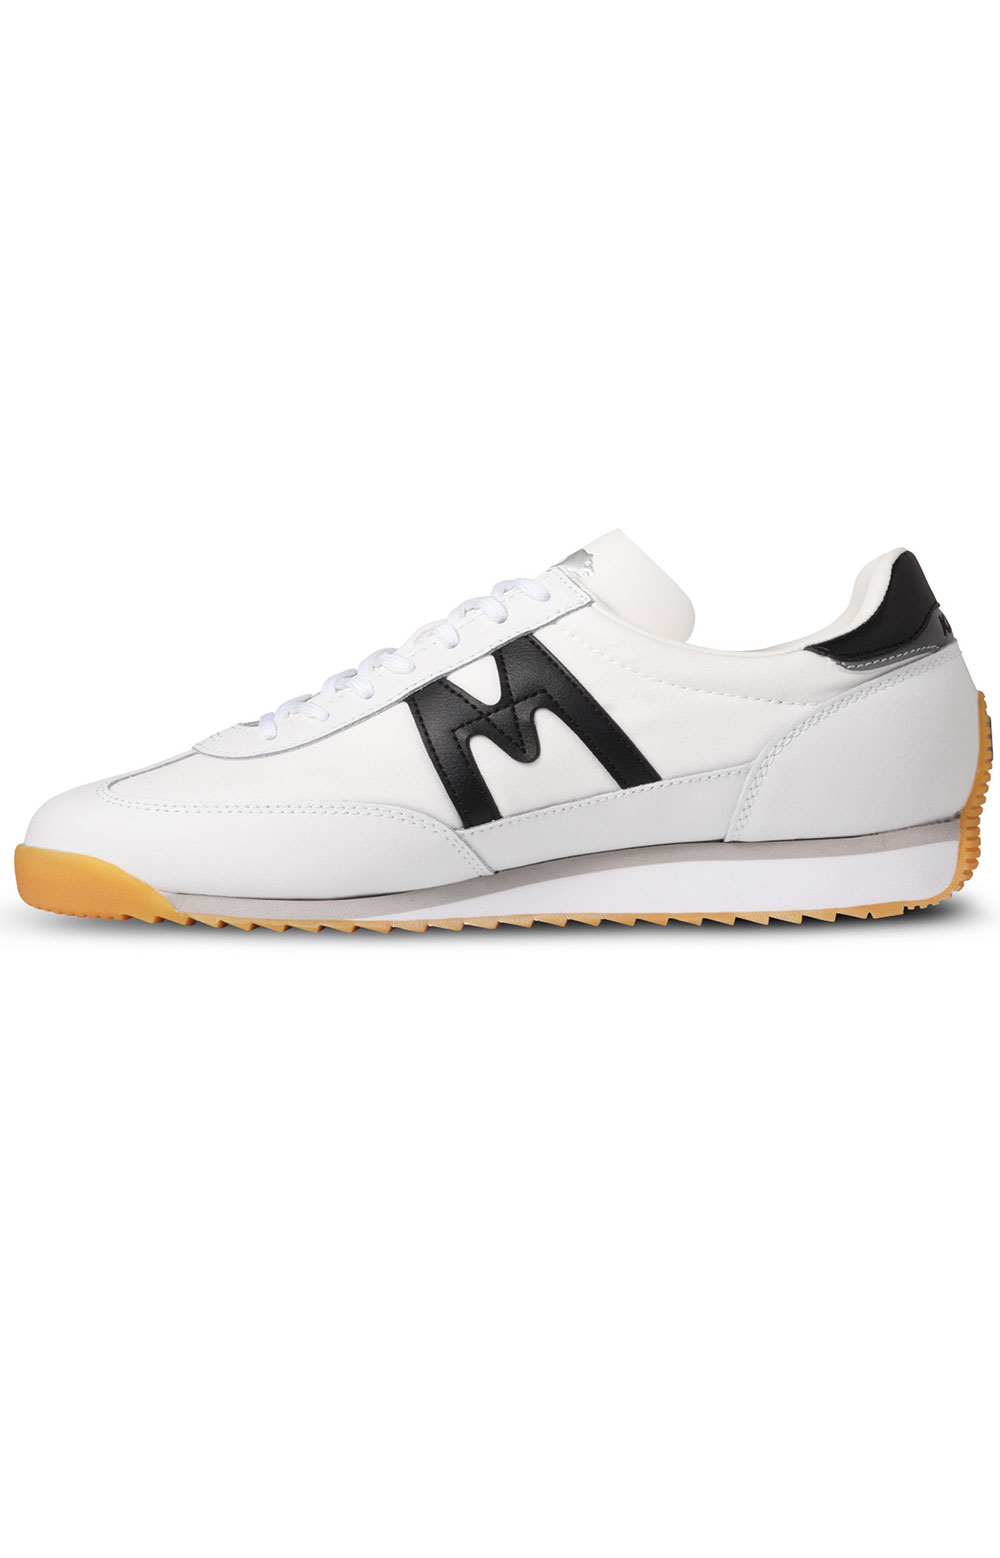 (F805015) Mestari Shoes - White/Black  4